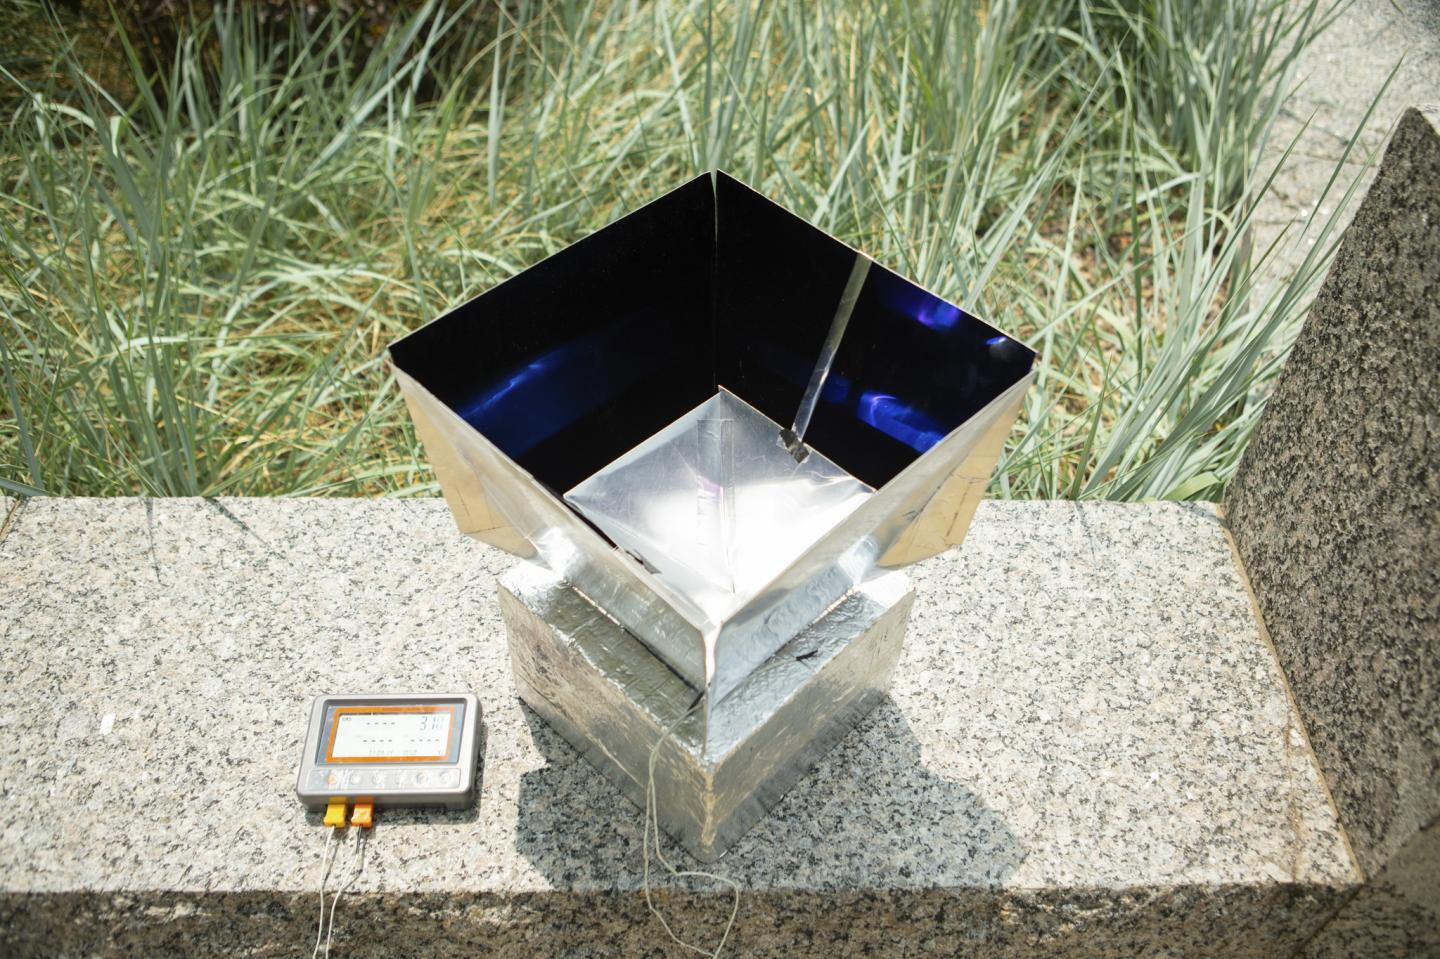 Radiative Cooling System